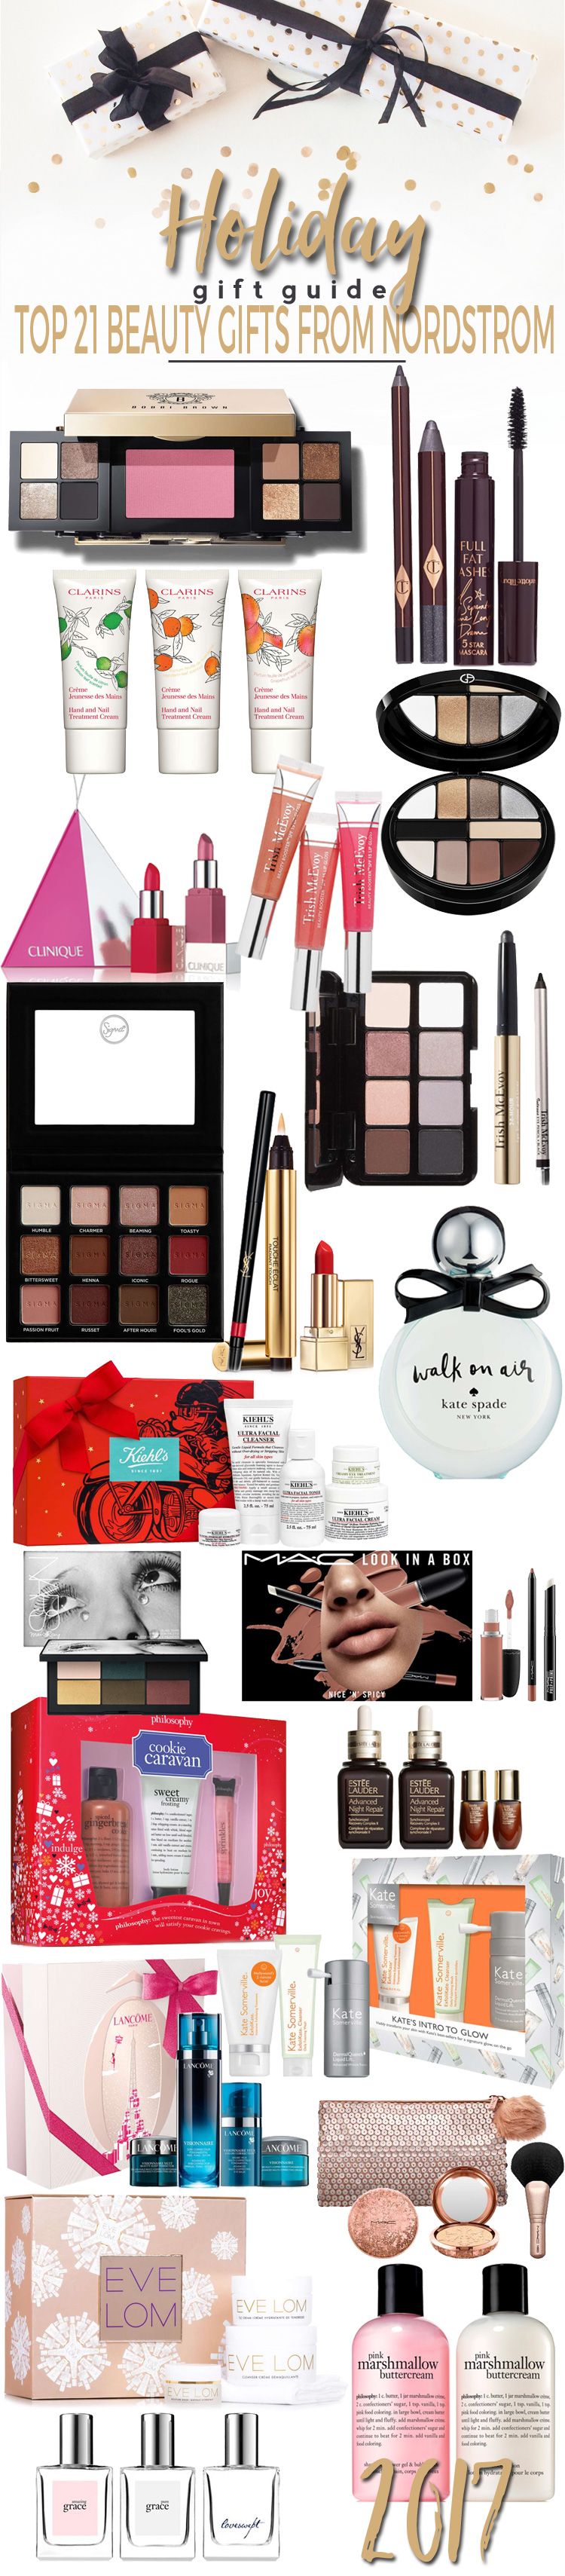 Top 21 Beauty Gifts from Nordstrom